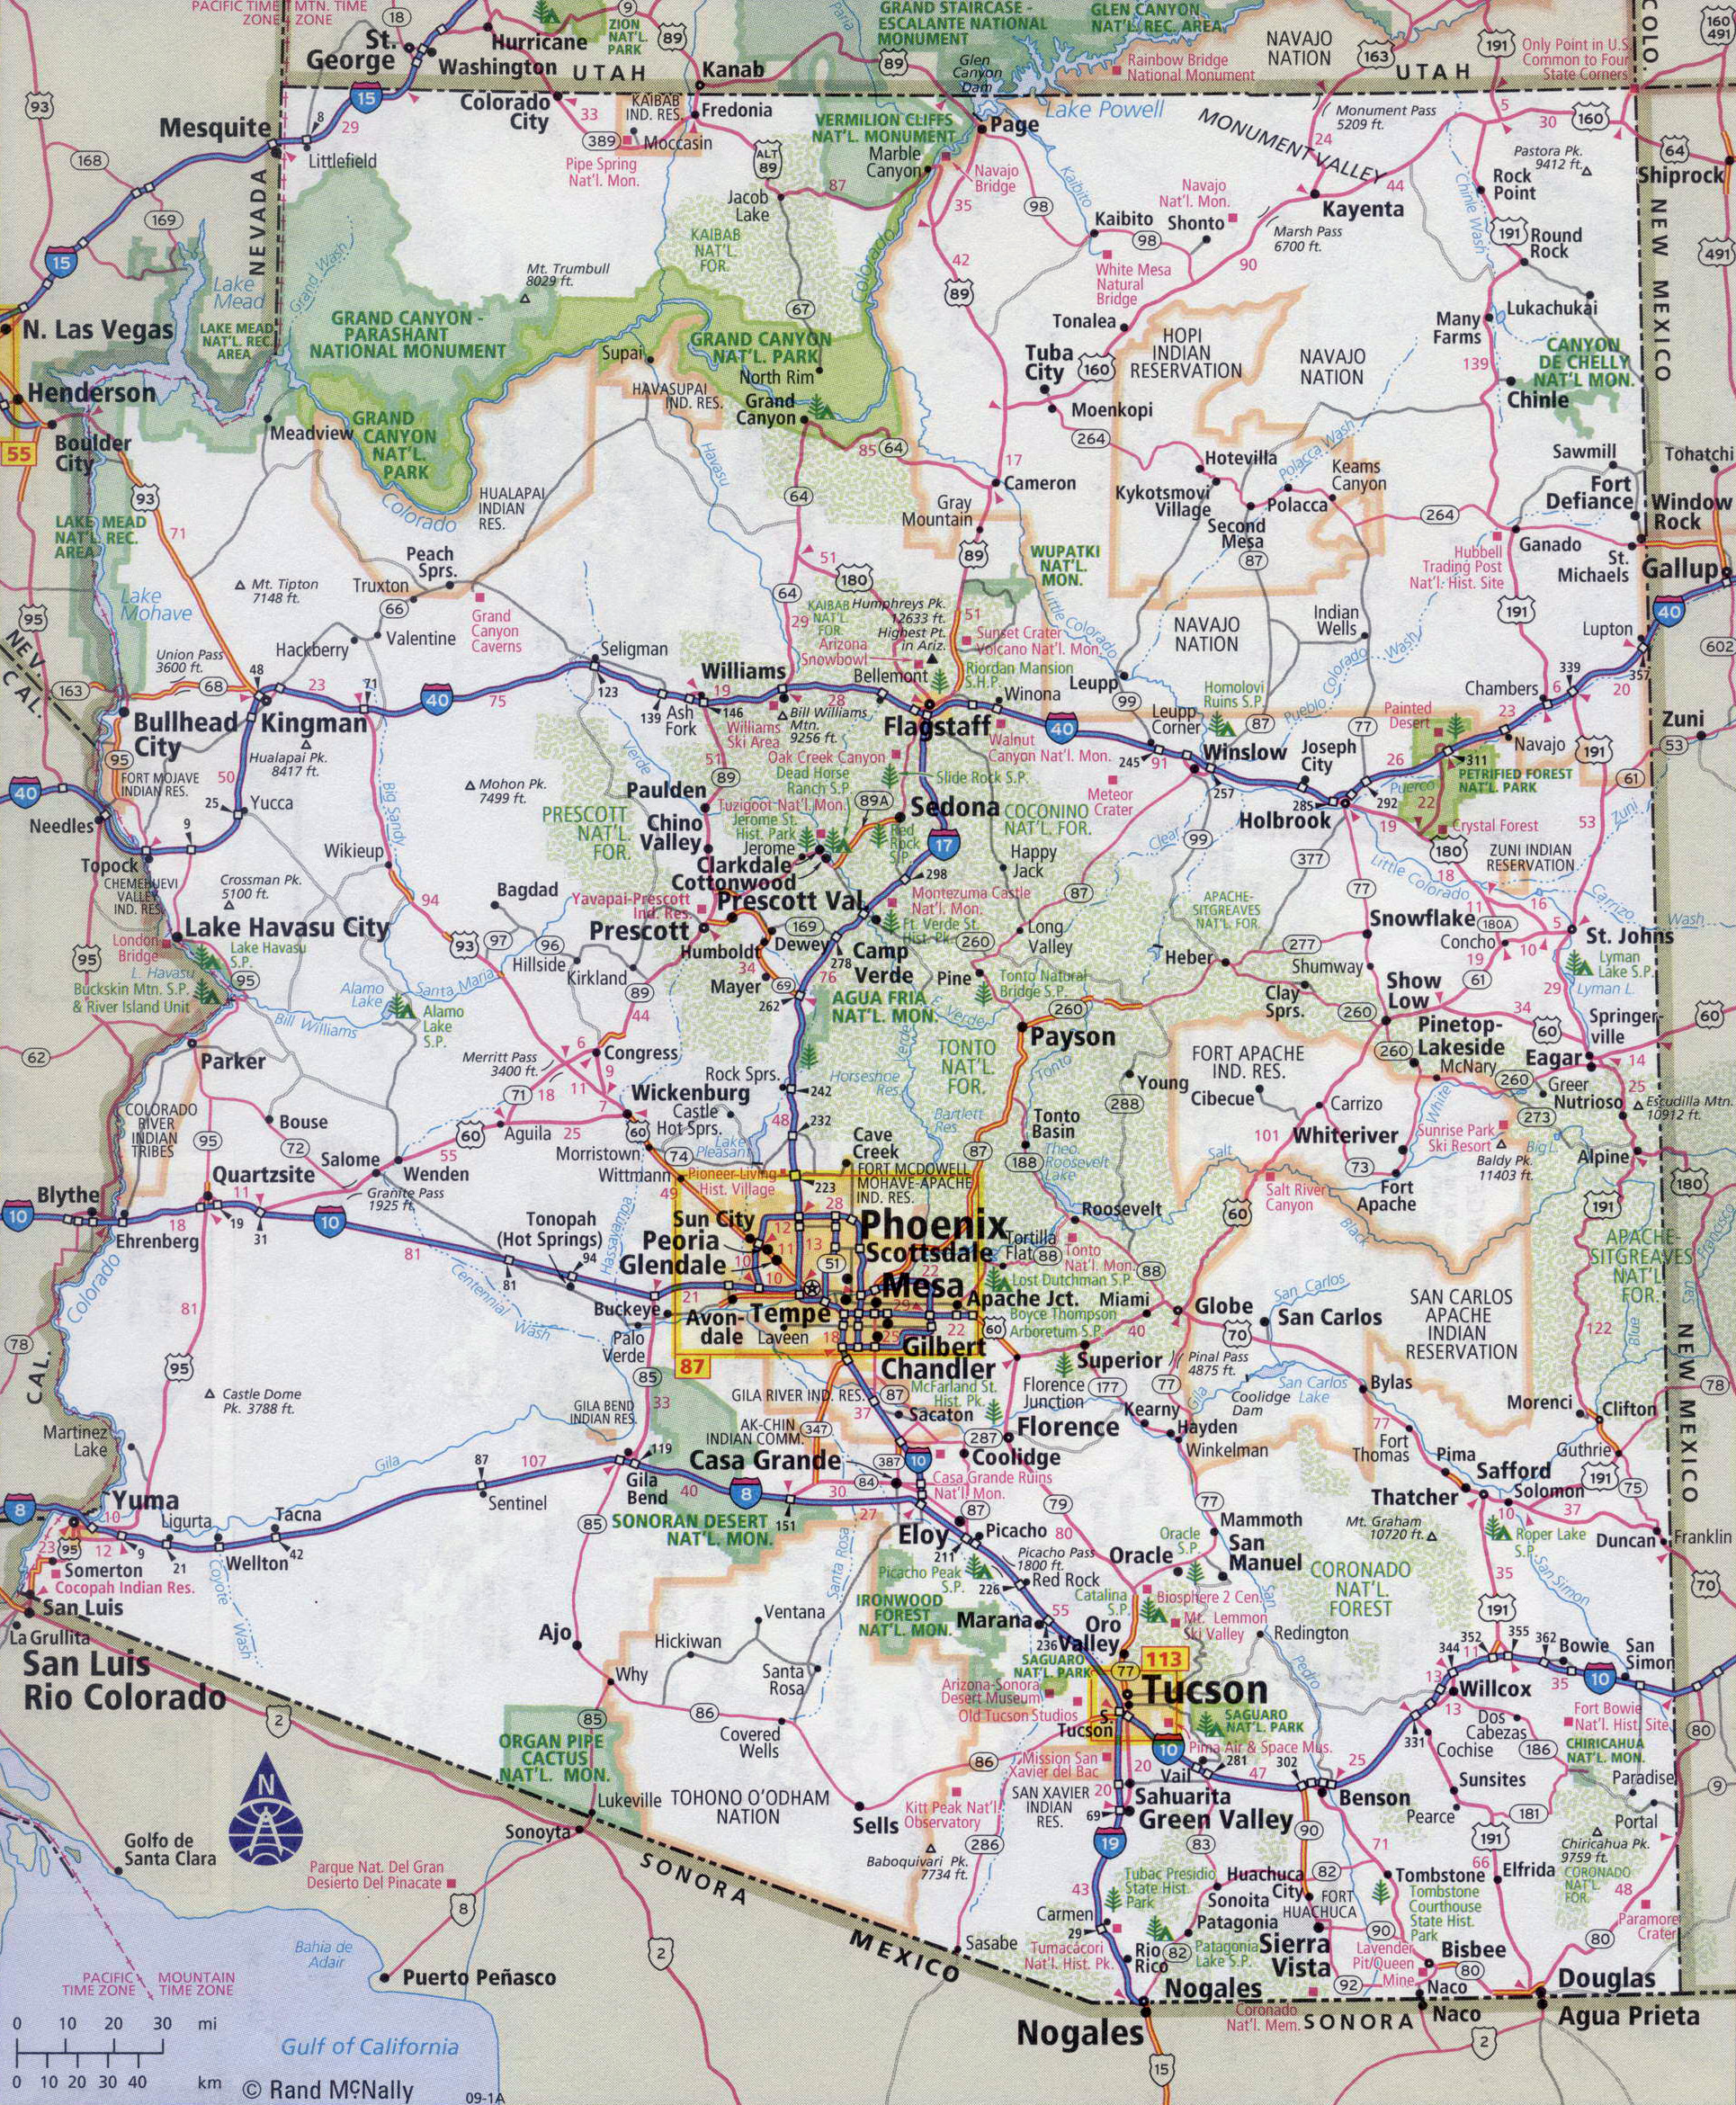 Large Detailed Roads And Highways Map Of Arizona State With All - Large detailed us map